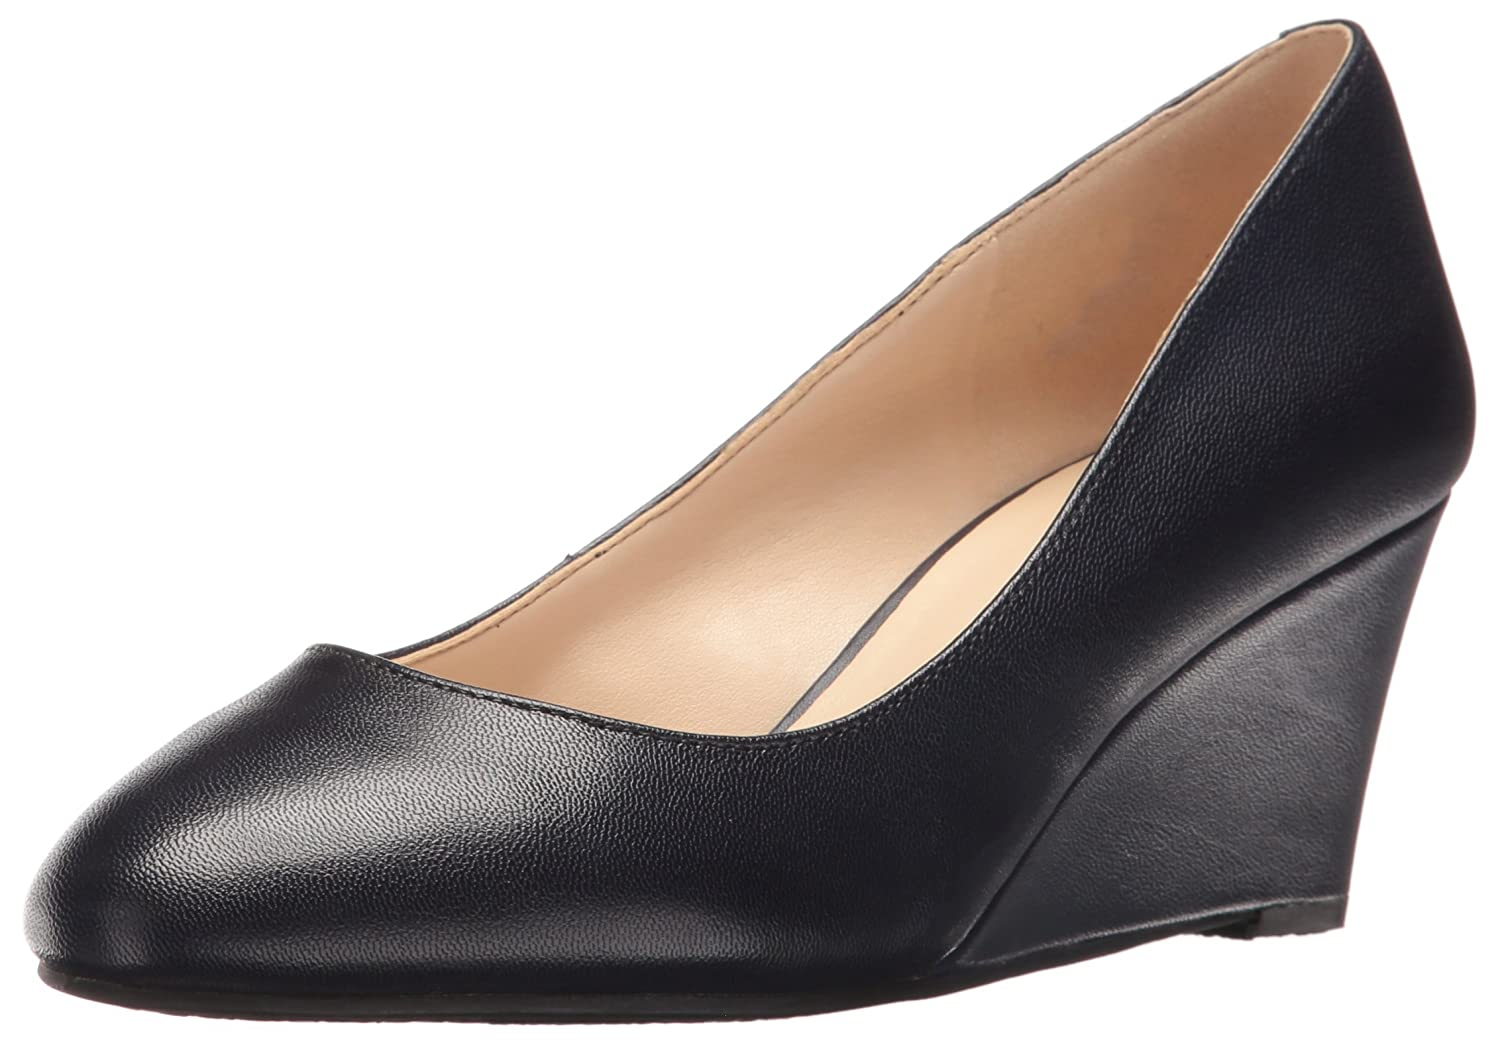 5218a5255b9b Nine West Women s iSpy Leather Leather Leather Wedge Pump B01HDO7T6S 7 B(M)  US ...